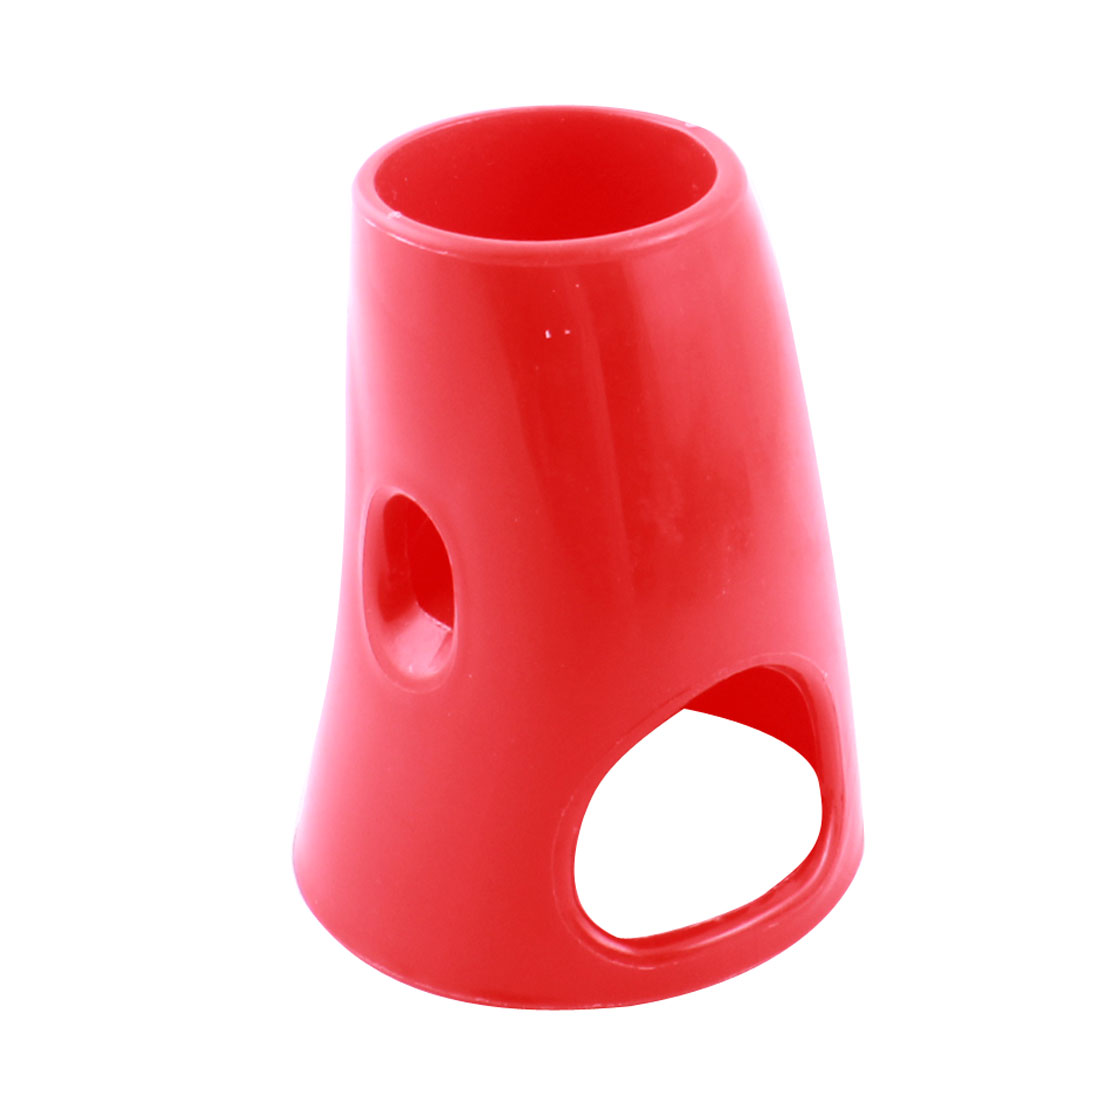 Red Plastic Water Bottle Base Holder Stand + Hut Hideout Cage House 2 in 1 for Small Animal Pet Hamster Gerbil Mouse